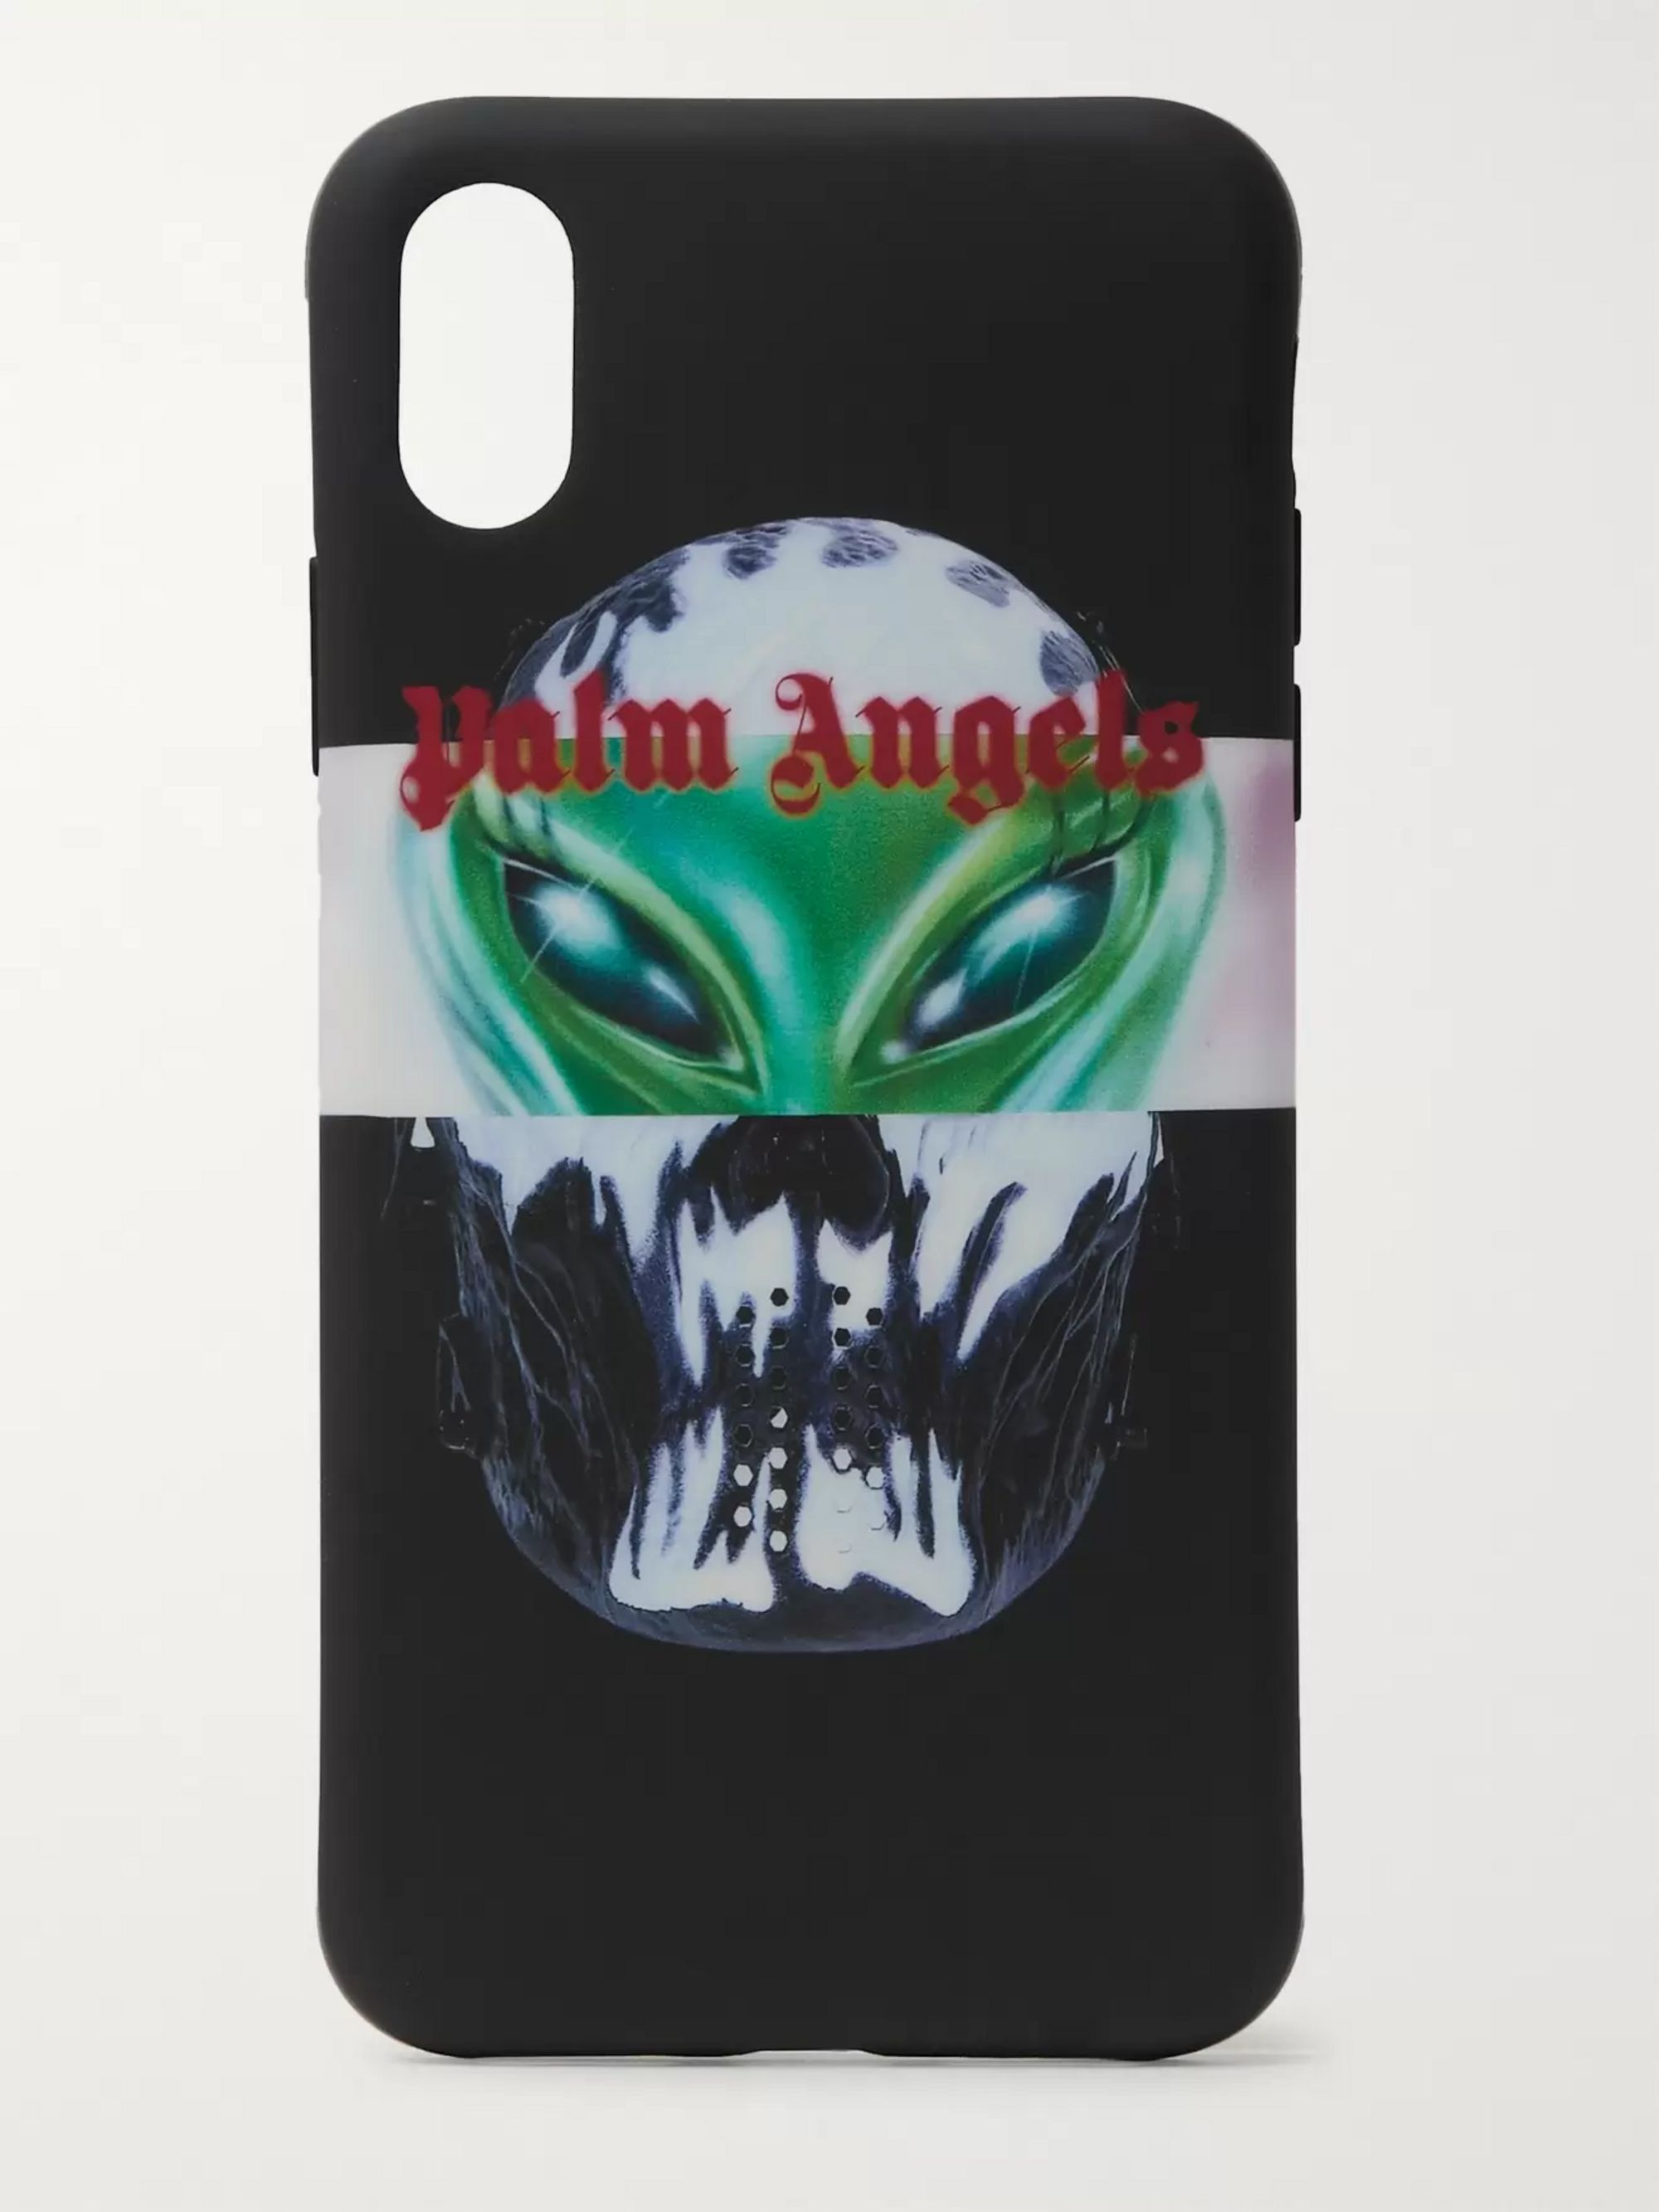 Palm Angels Printed Rubber iPhone X Case